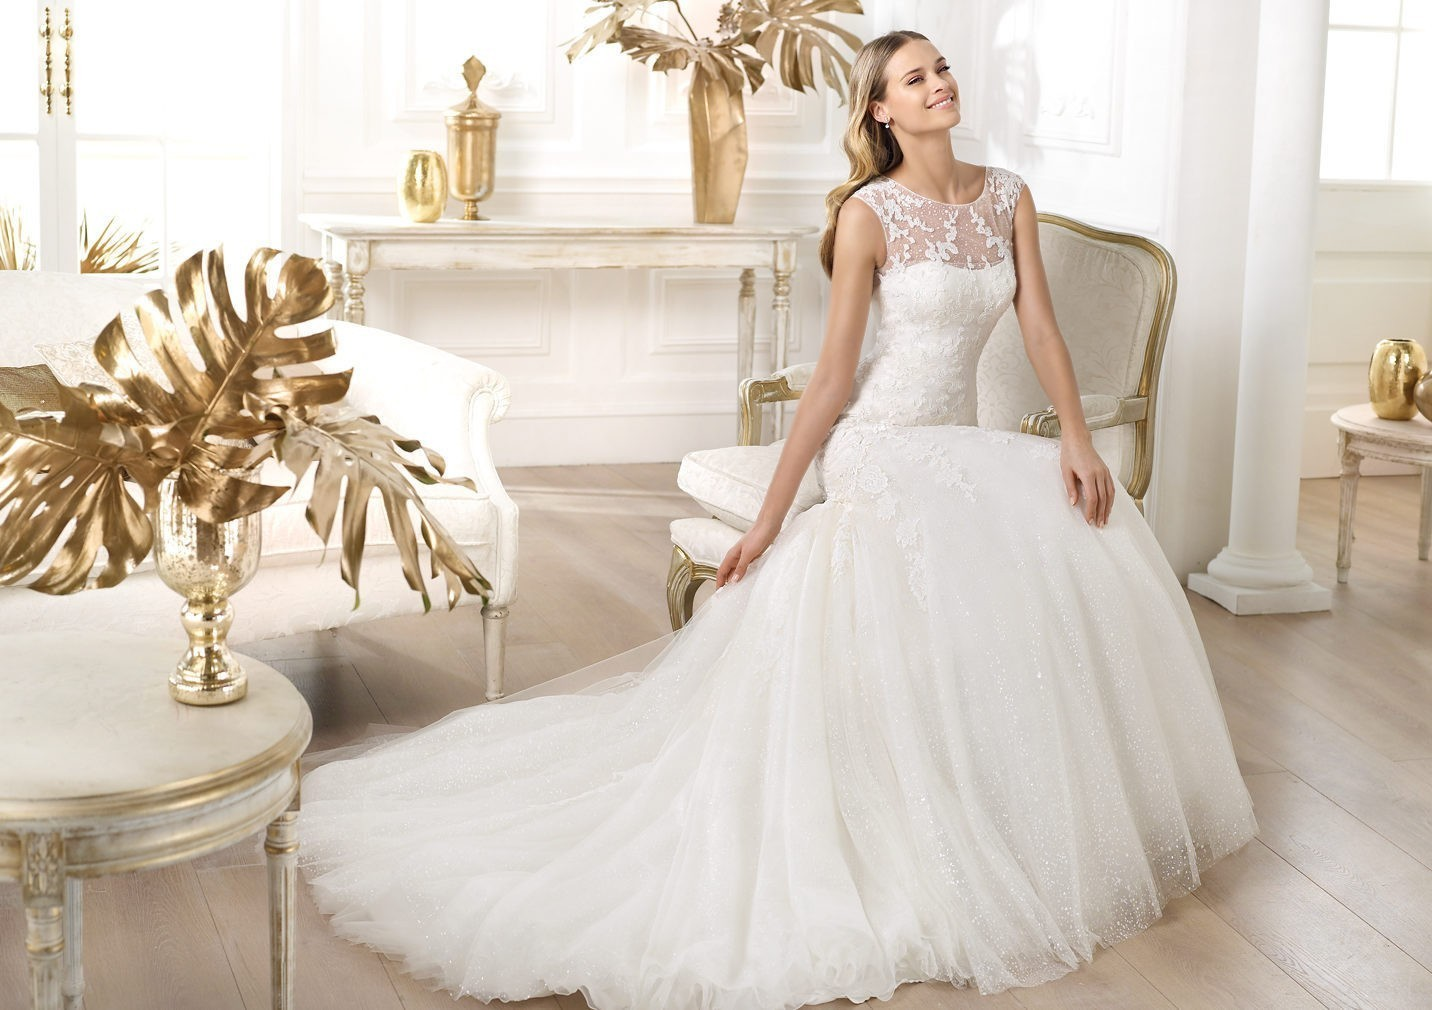 Free wedding dresses 100 images free wedding dress sewing free wedding dresses free wedding wallpapers 57 wallpapers adorable wallpapers ombrellifo Images